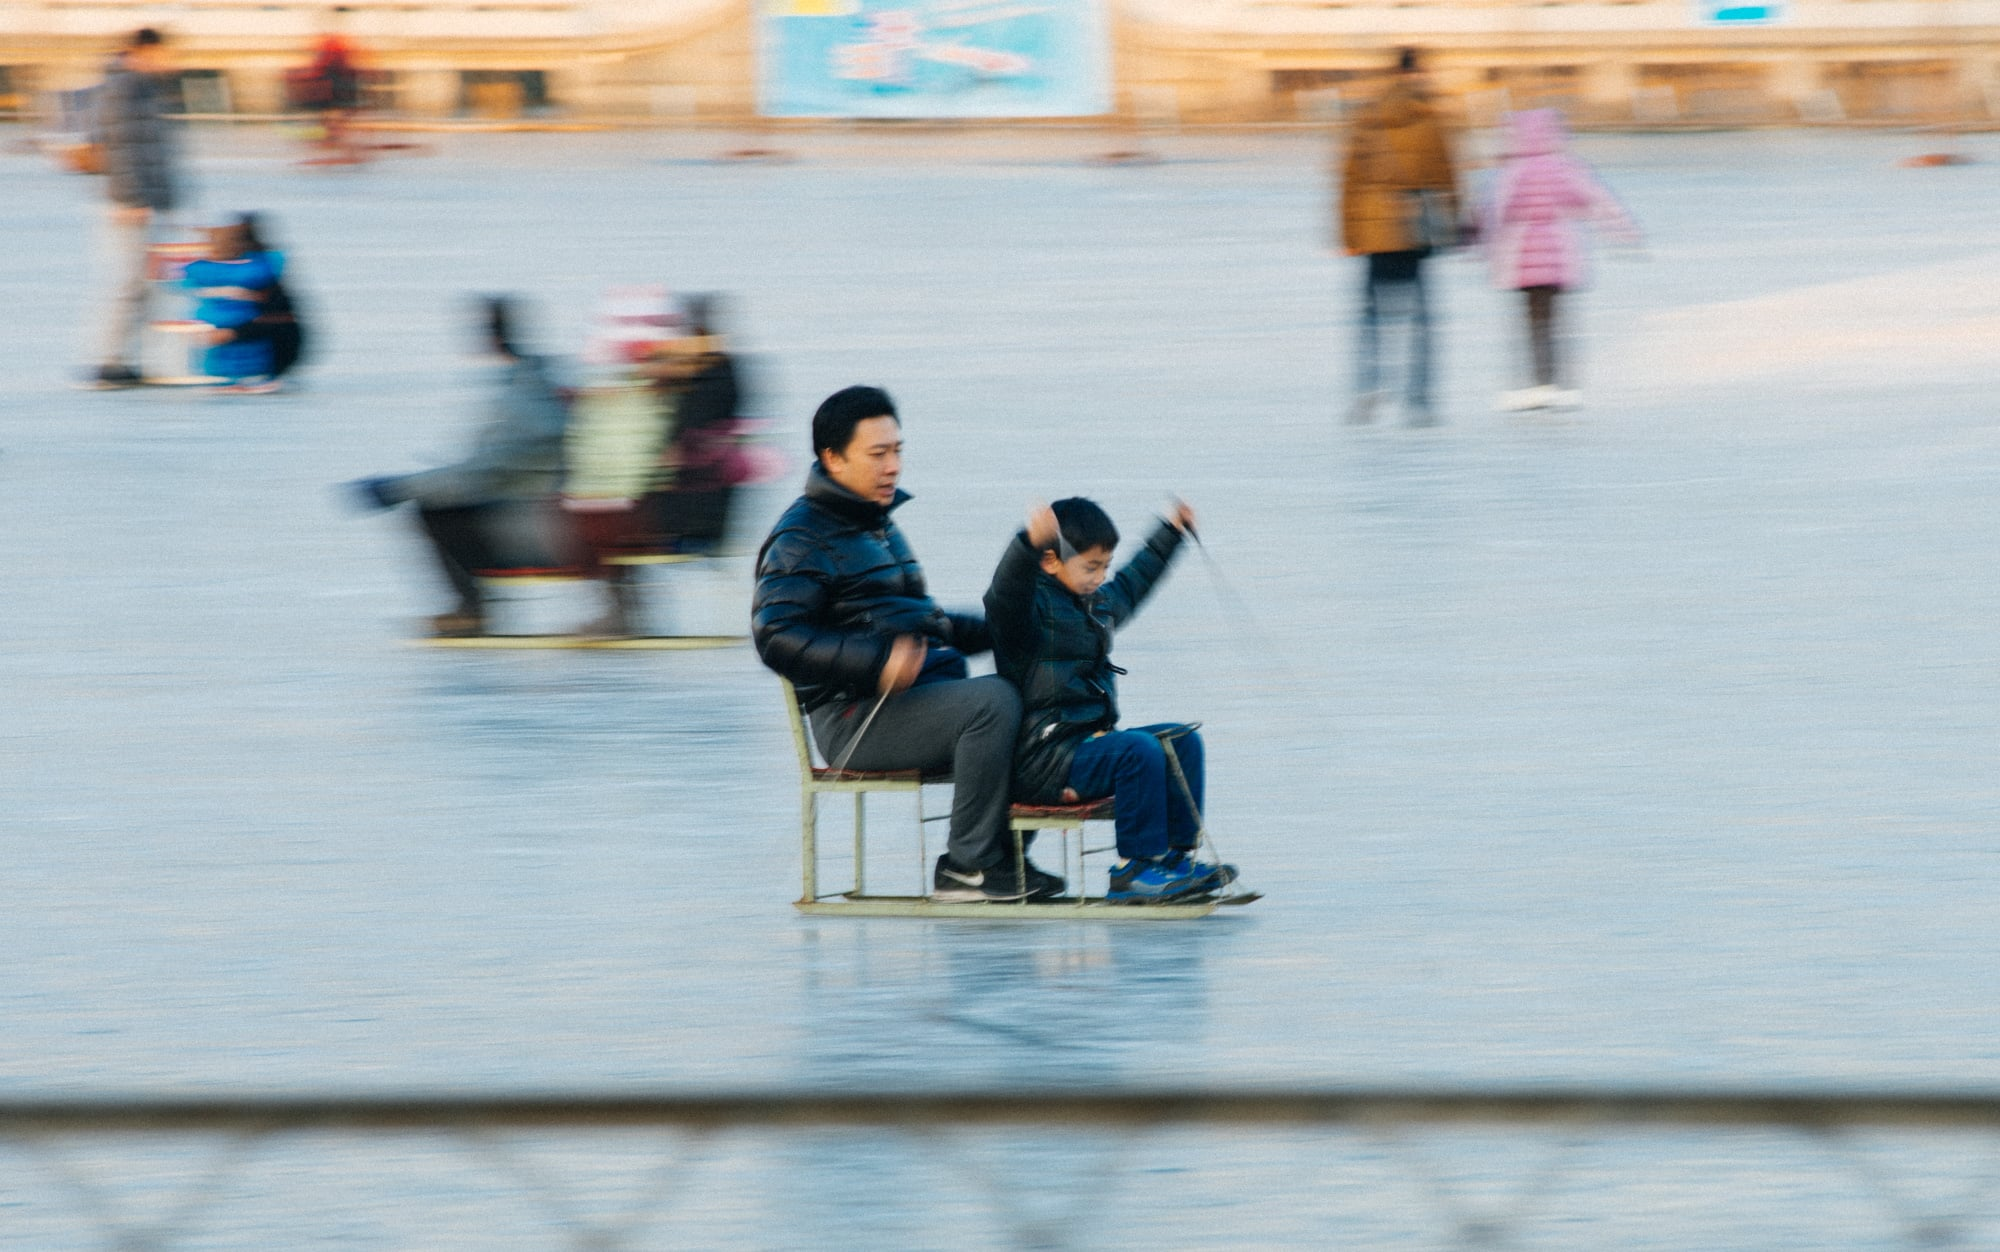 This kid was having so much fun trying to push his chair-skate, but actually the dad in the back was doing all the work.